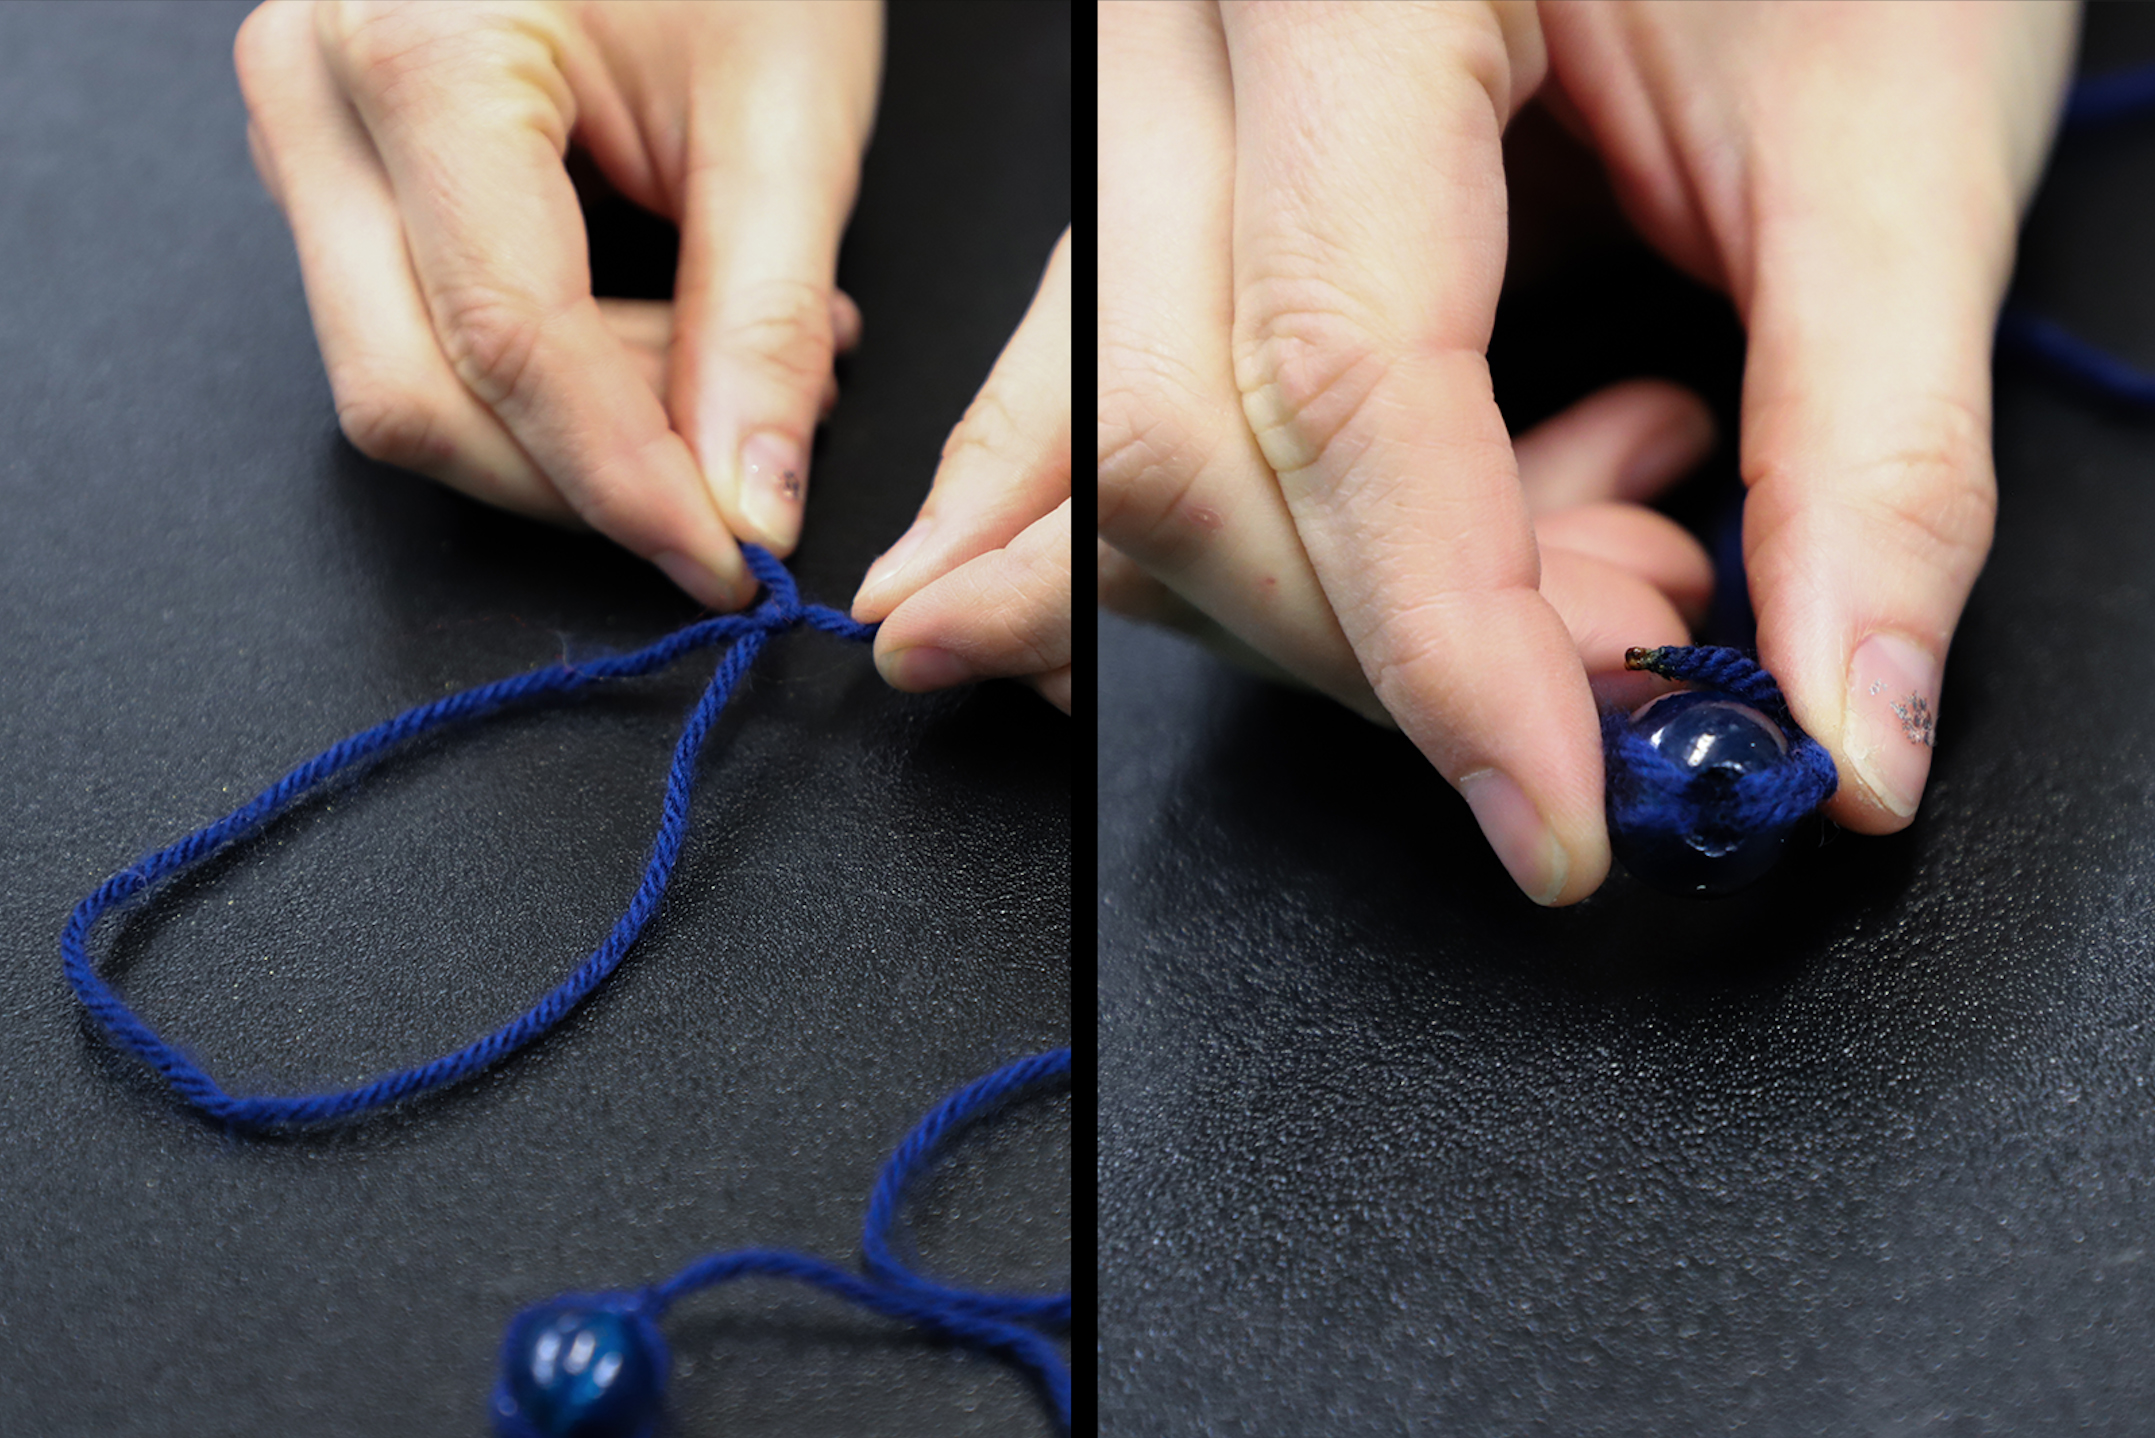 Making a loop at one end of a piece of string and attaching a bead to the other end.